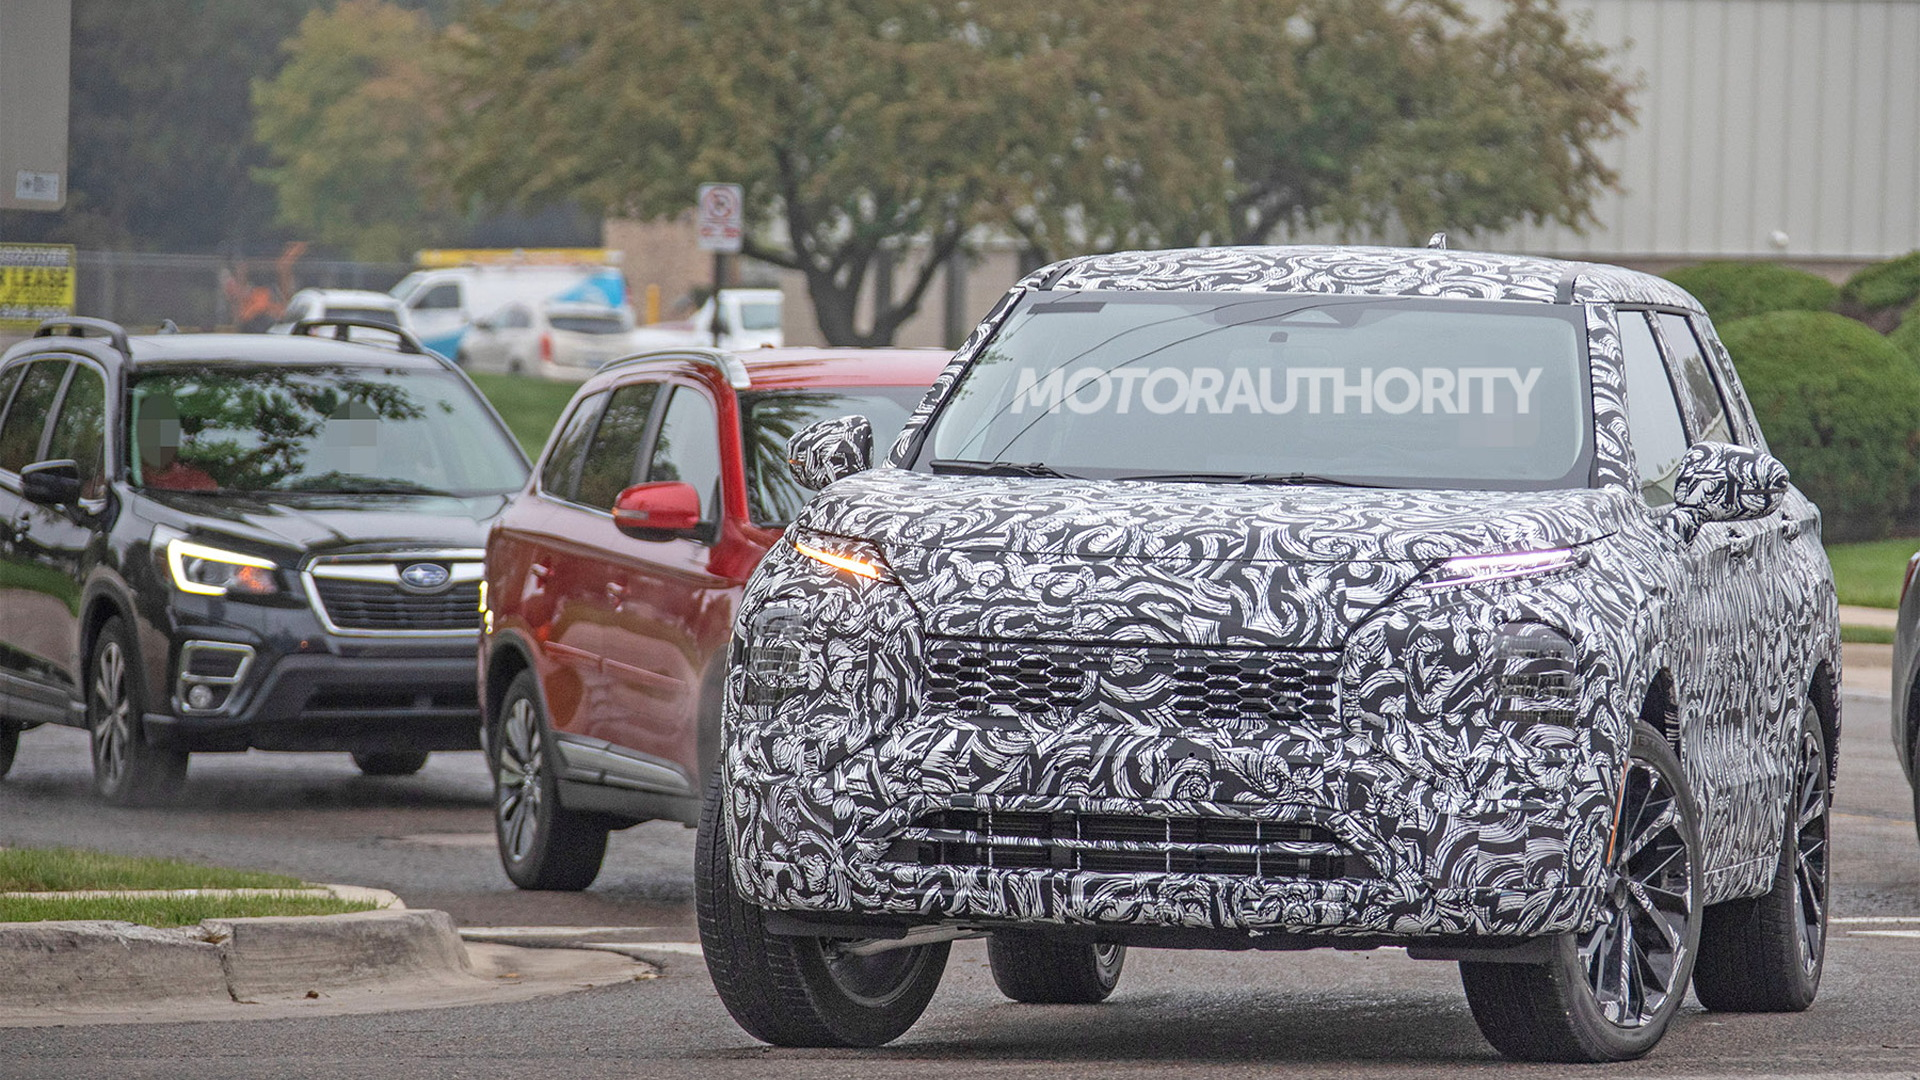 2021 Mitsubishi Outlander spy shots - Photo credit: S. Baldauf/SB-Medien